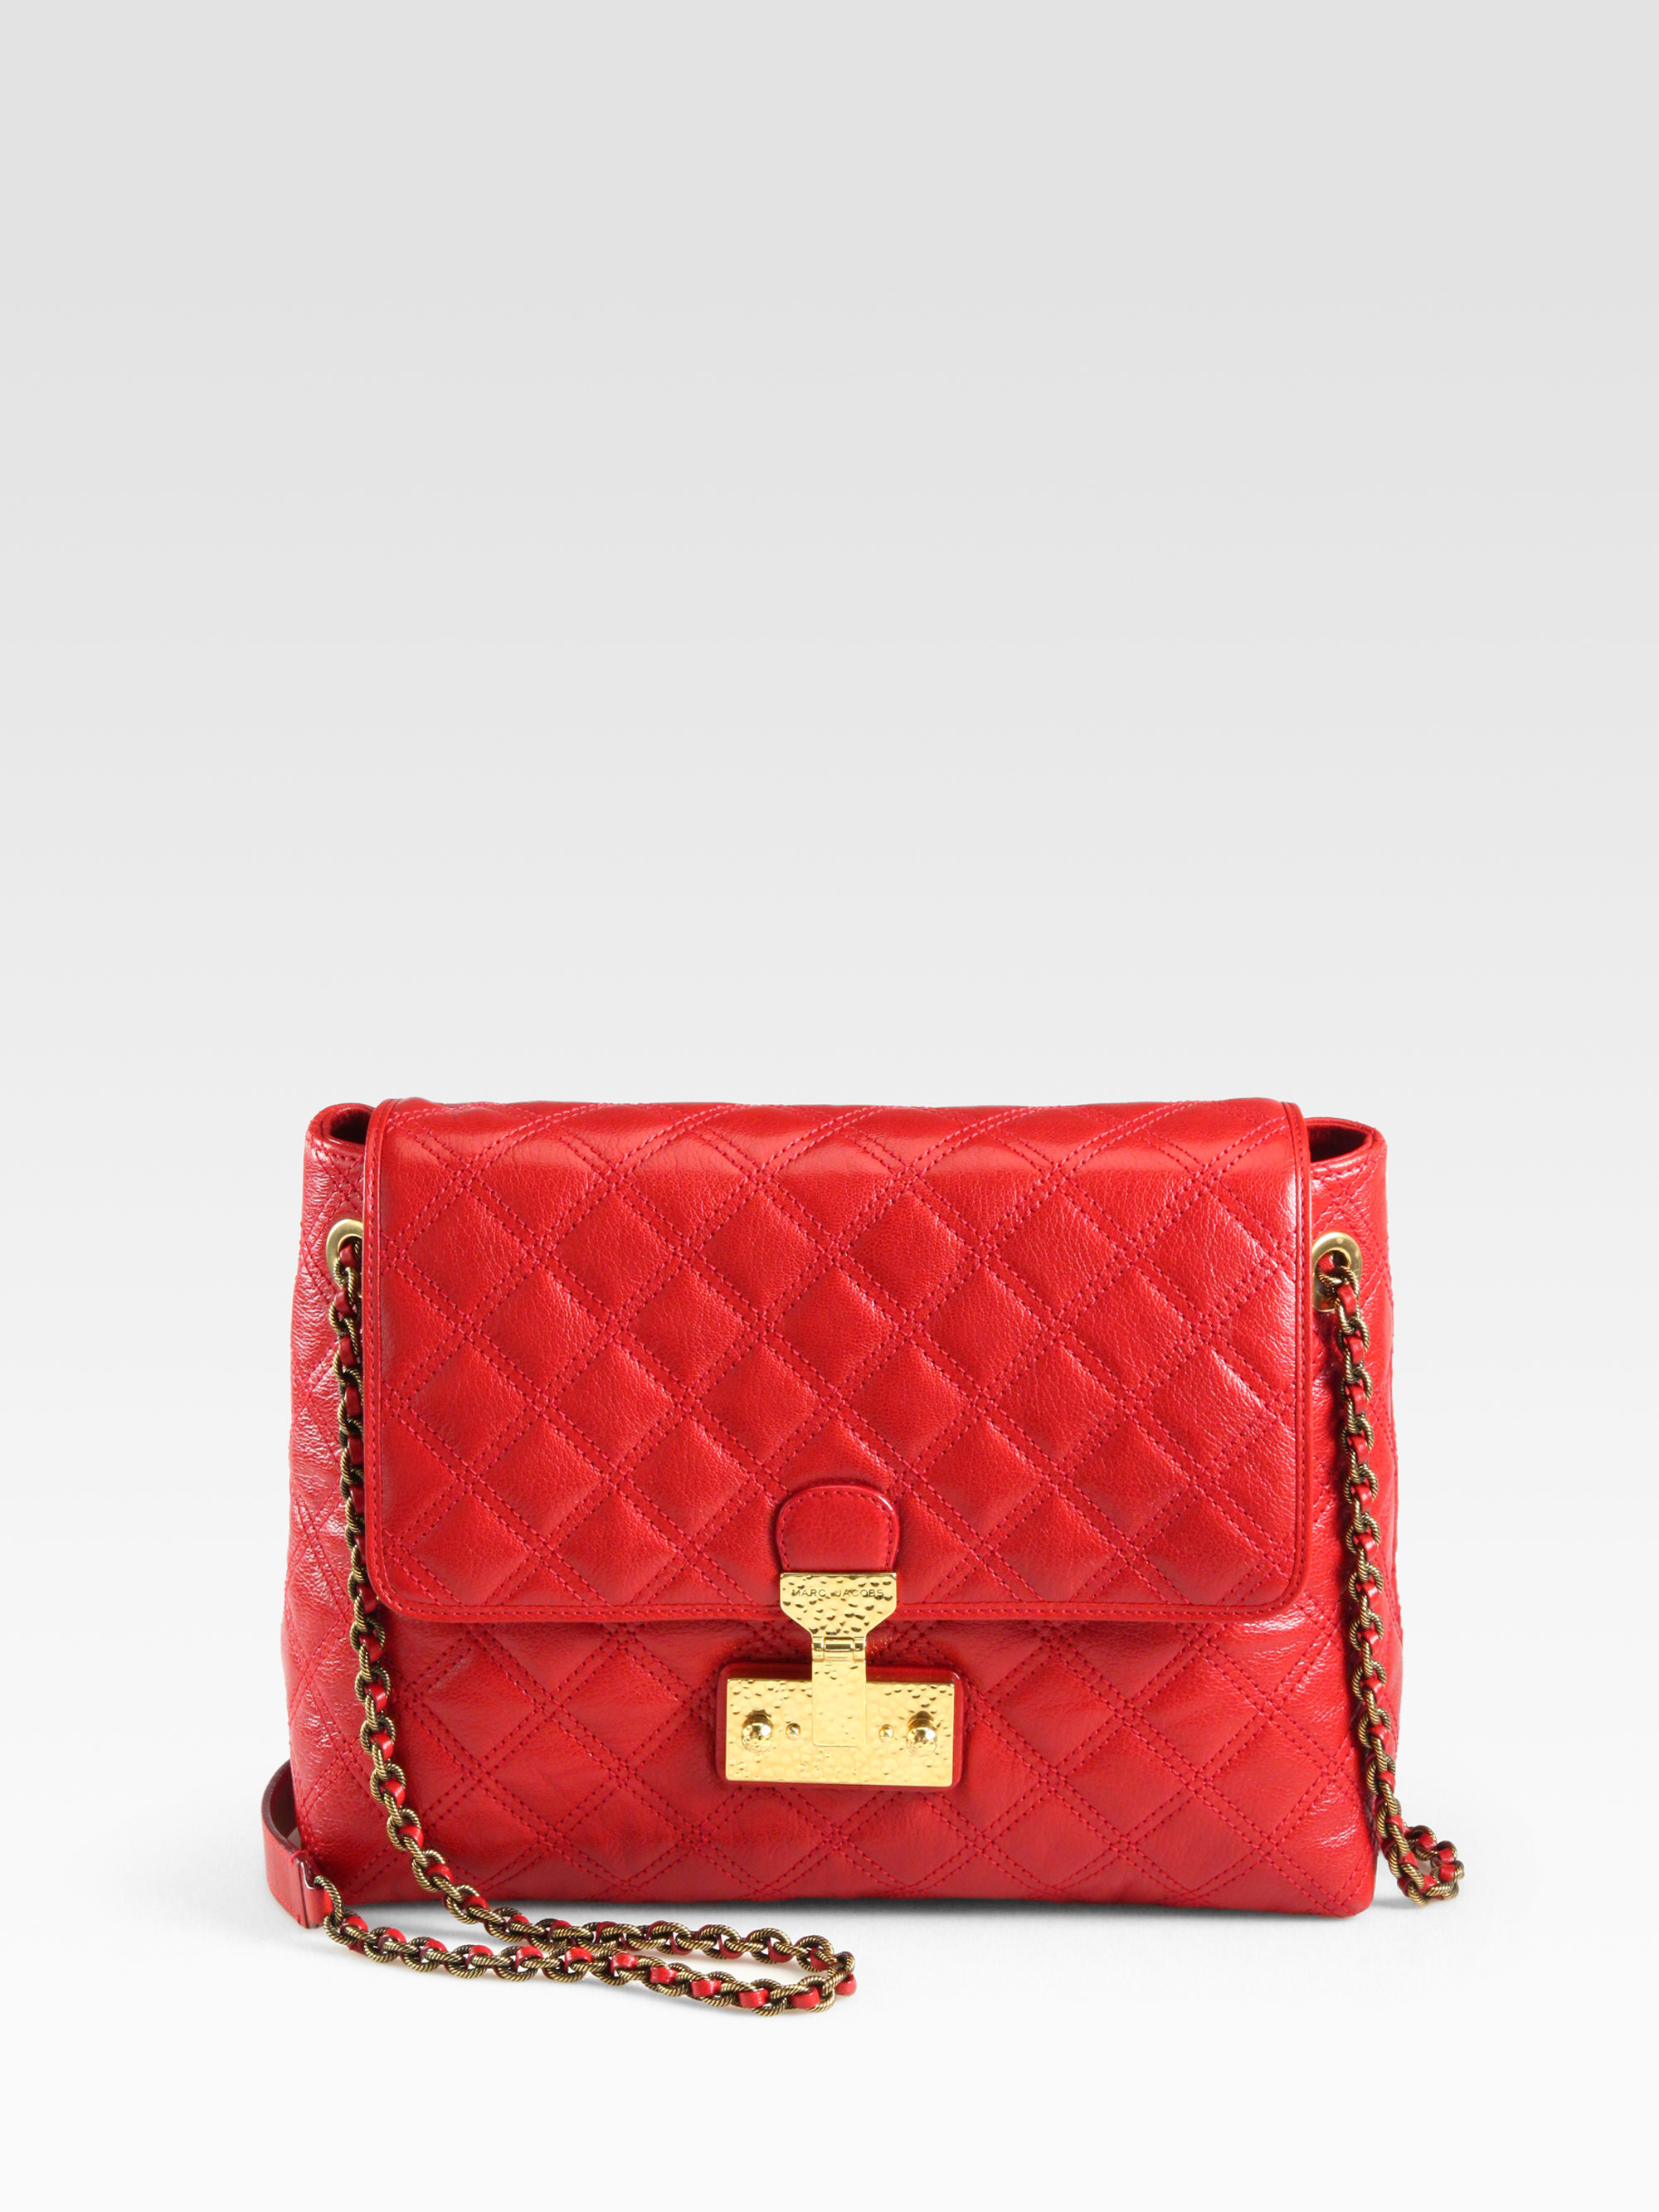 Marc jacobs Baroque Xl Single Quilted Shoulder Bag in Red | Lyst